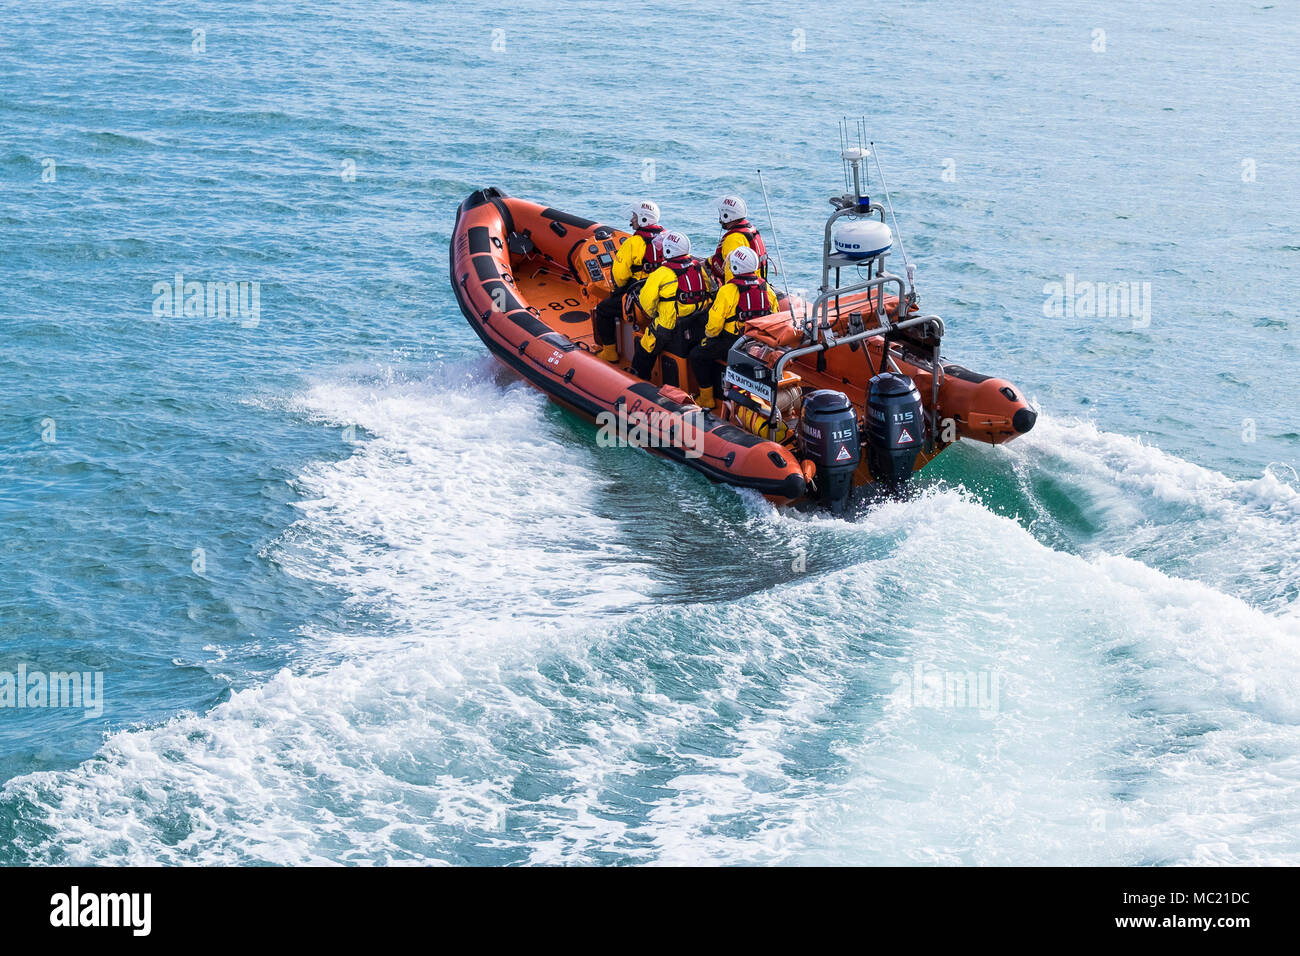 Volunteers of the Newquay RNLI crew participating in a GMICE (Good Medicine in Challenging Environments) major incident exercise in Newquay. - Stock Image